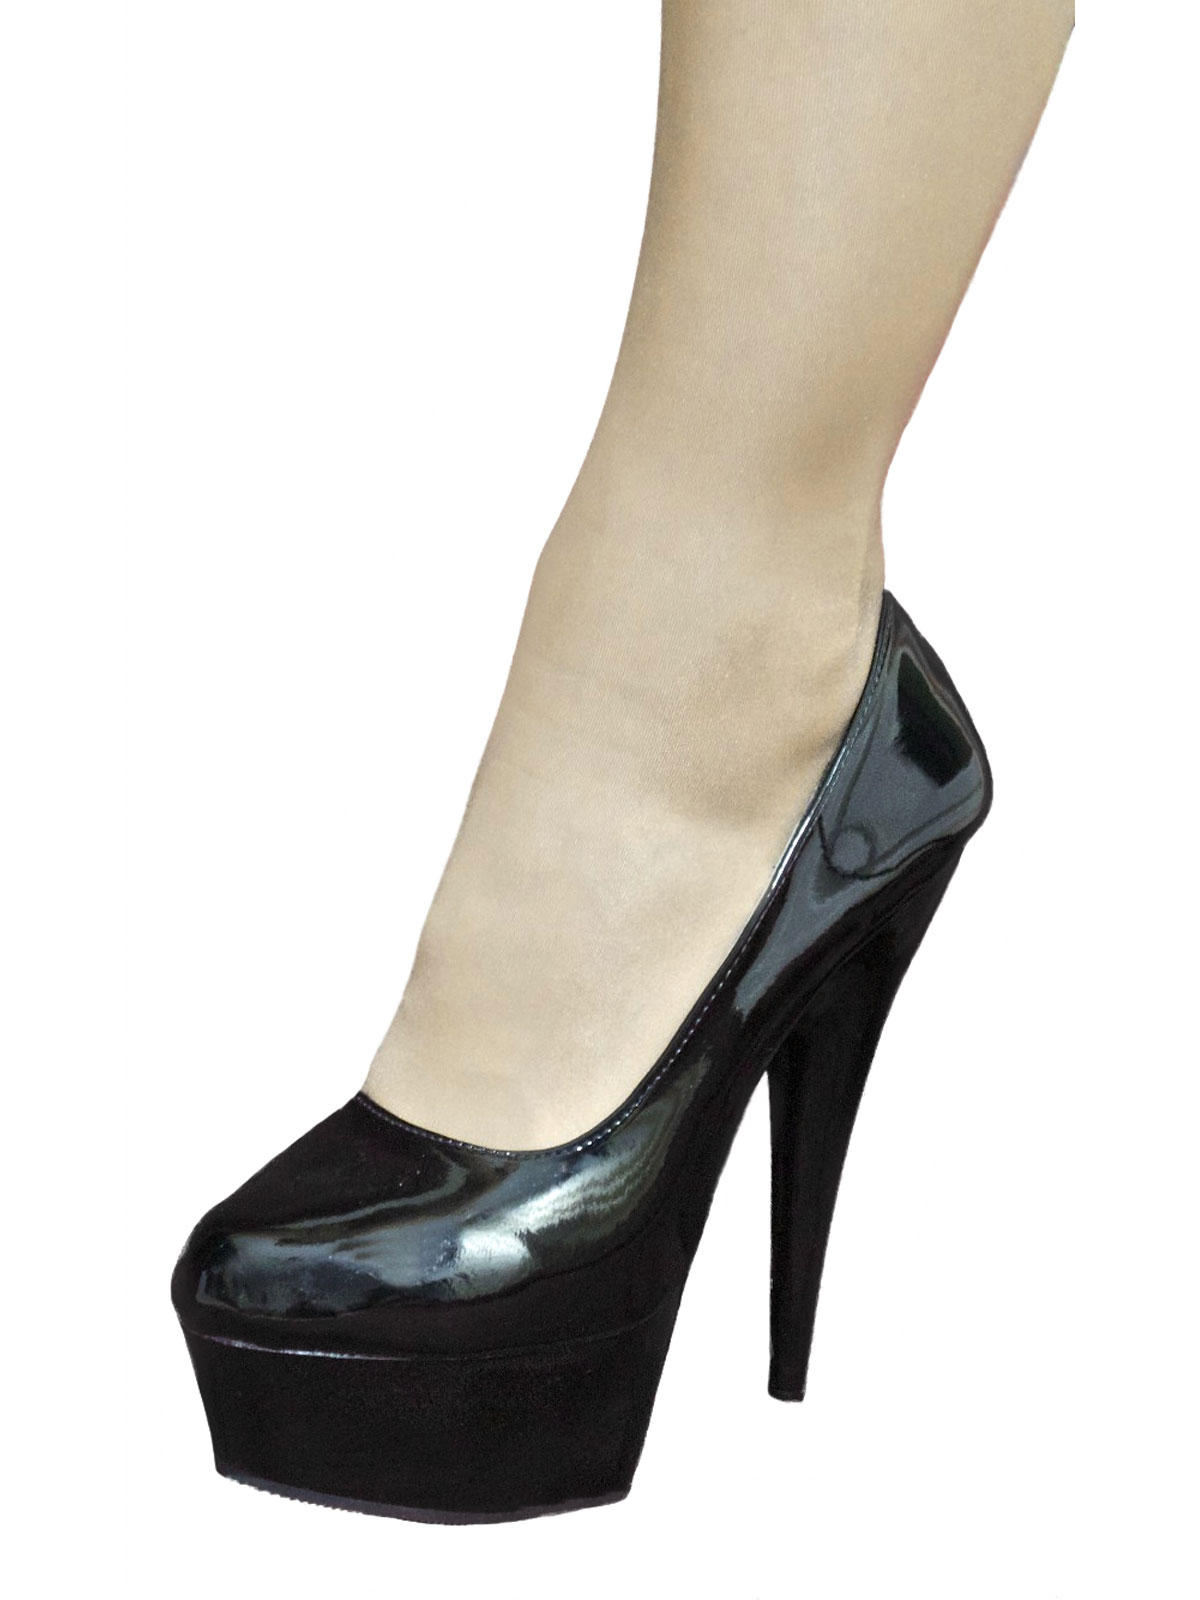 Pleaser Black Platform High Heels Pumps Tout Ensemble